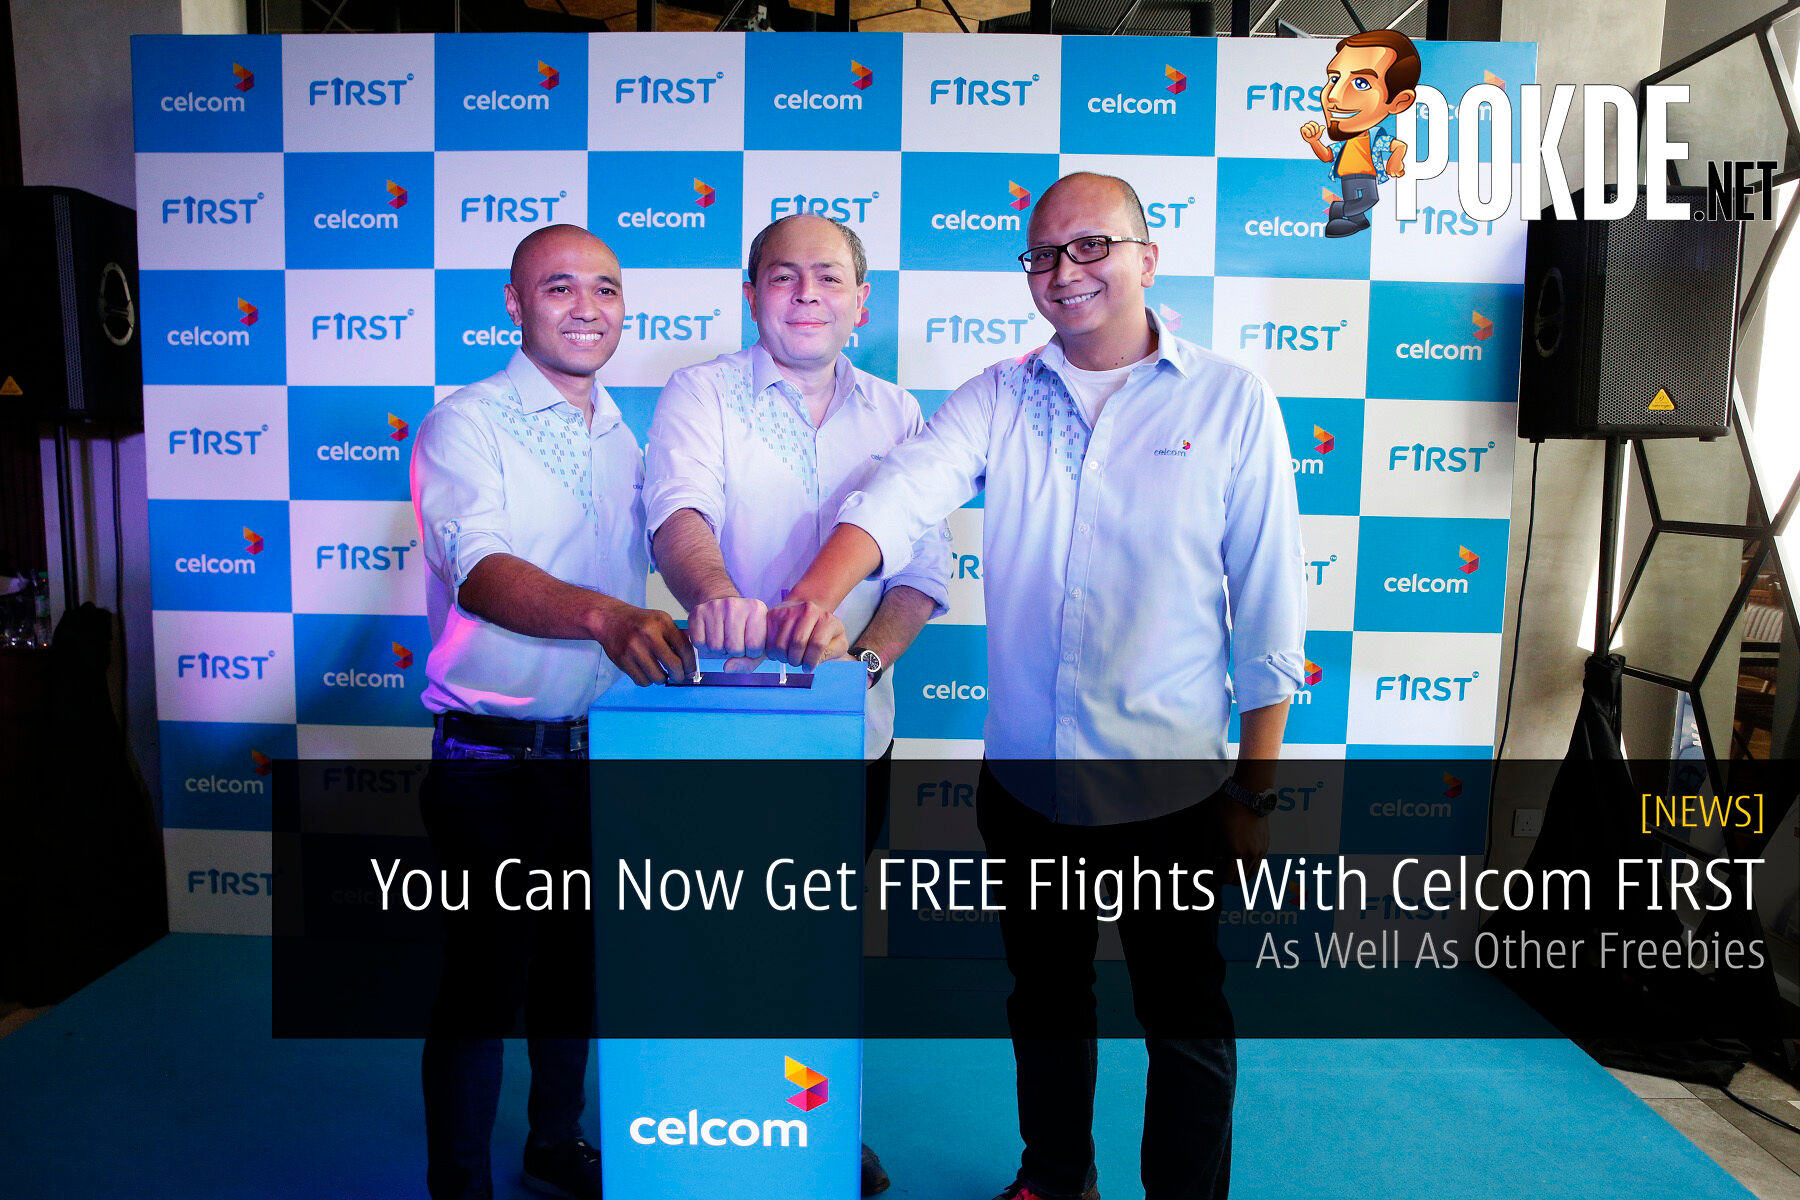 You Can Now Get FREE Flights With Celcom FIRST As Well As Other Freebies 20